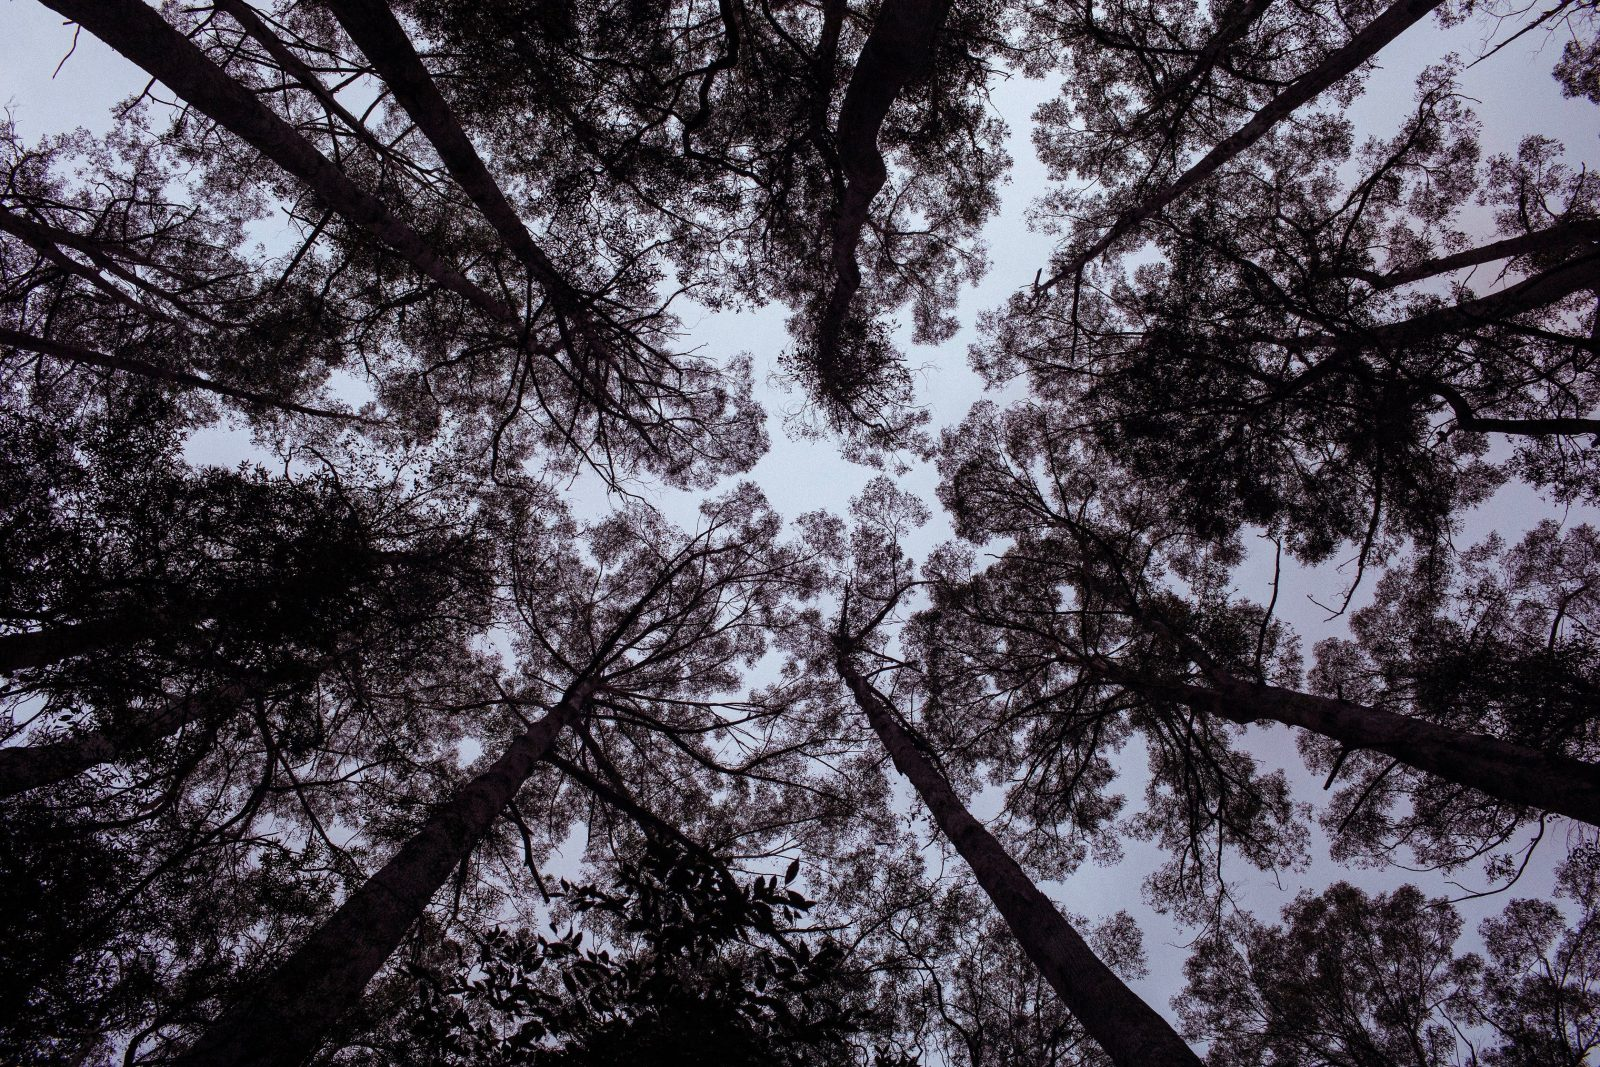 Looking skywards in the Hastings Caves State Reserve forest during Hrafn: Conversations with Odin